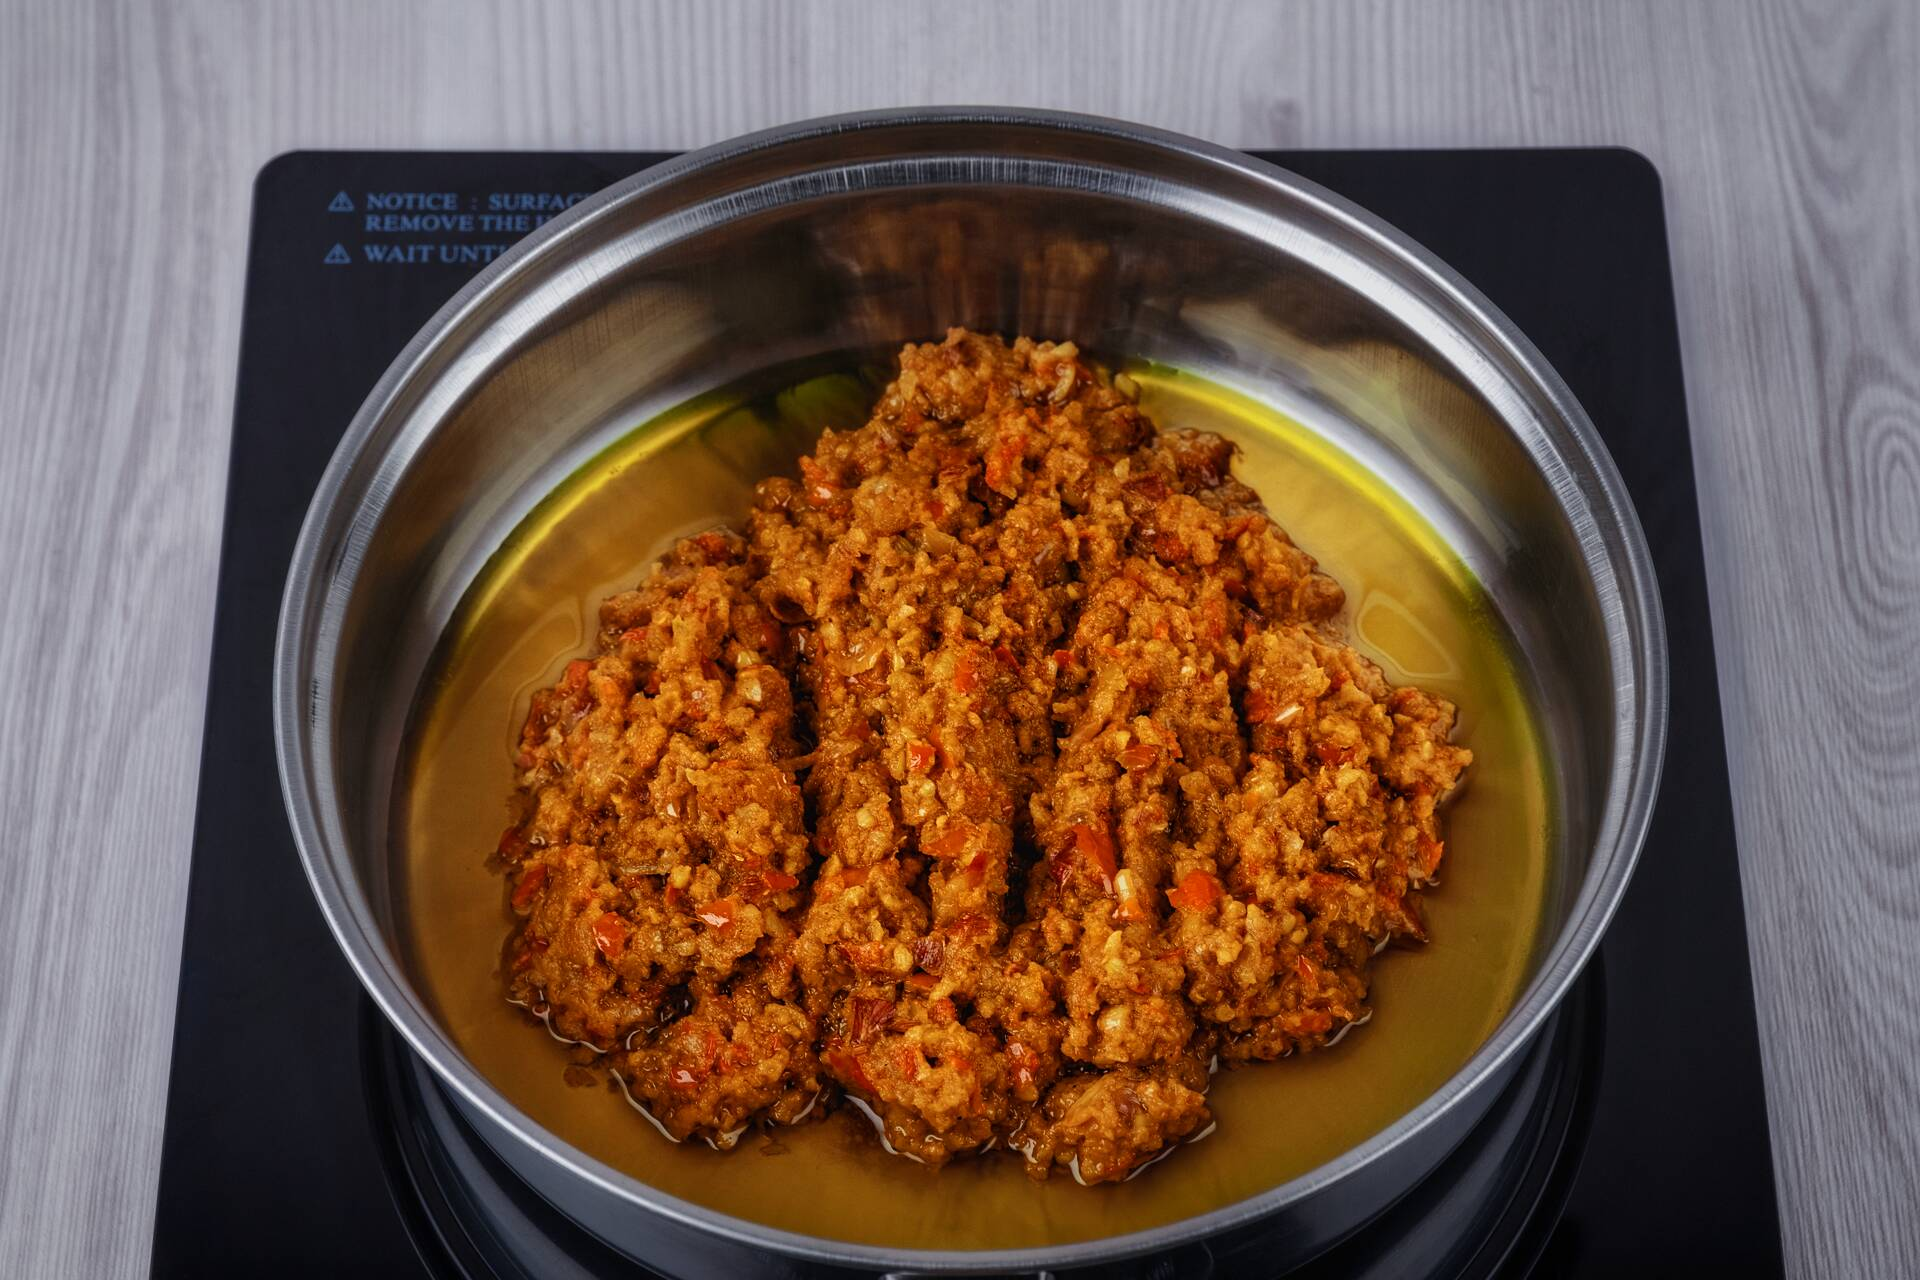 Puree the spices